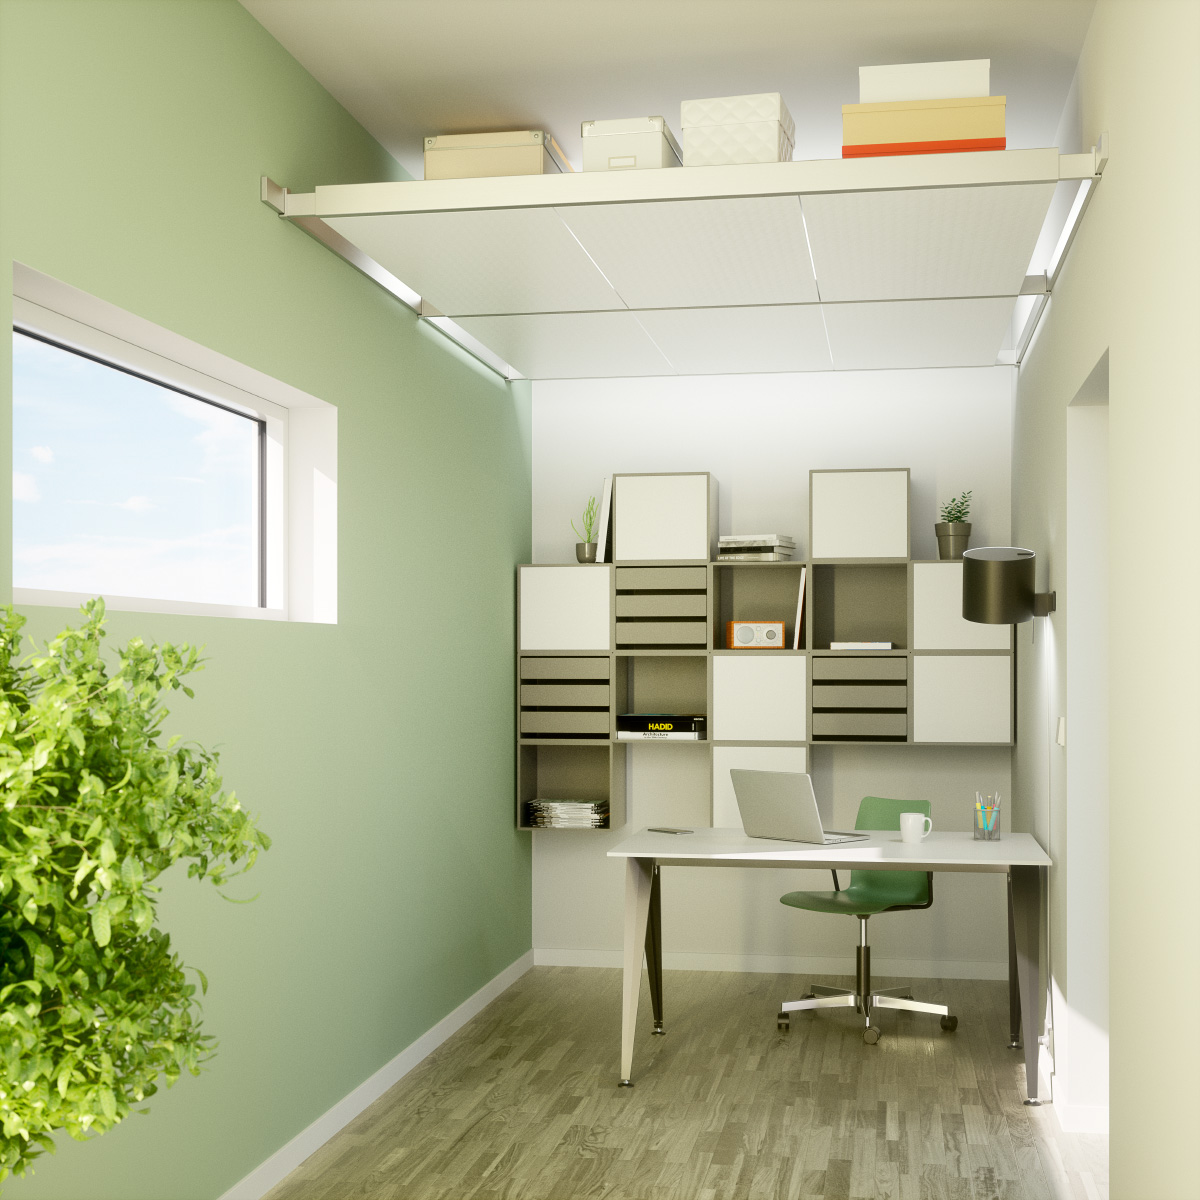 Dolle_Beam-it-up_Office